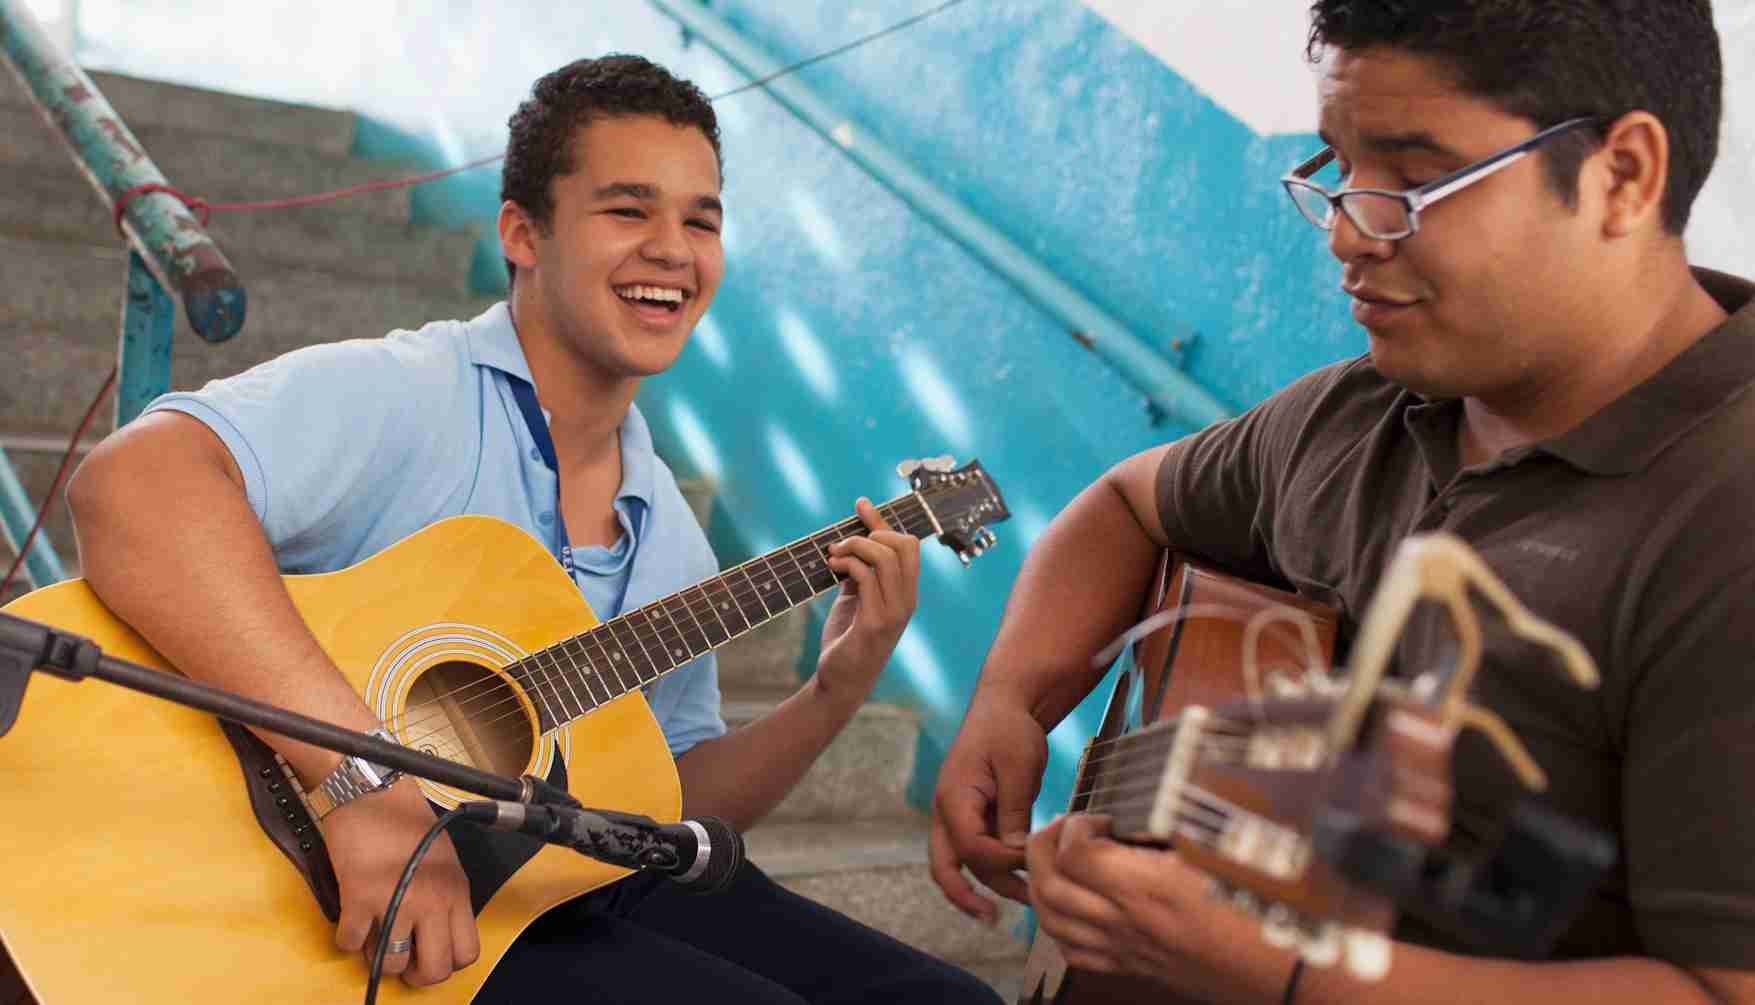 Students in Venezuela play guitars